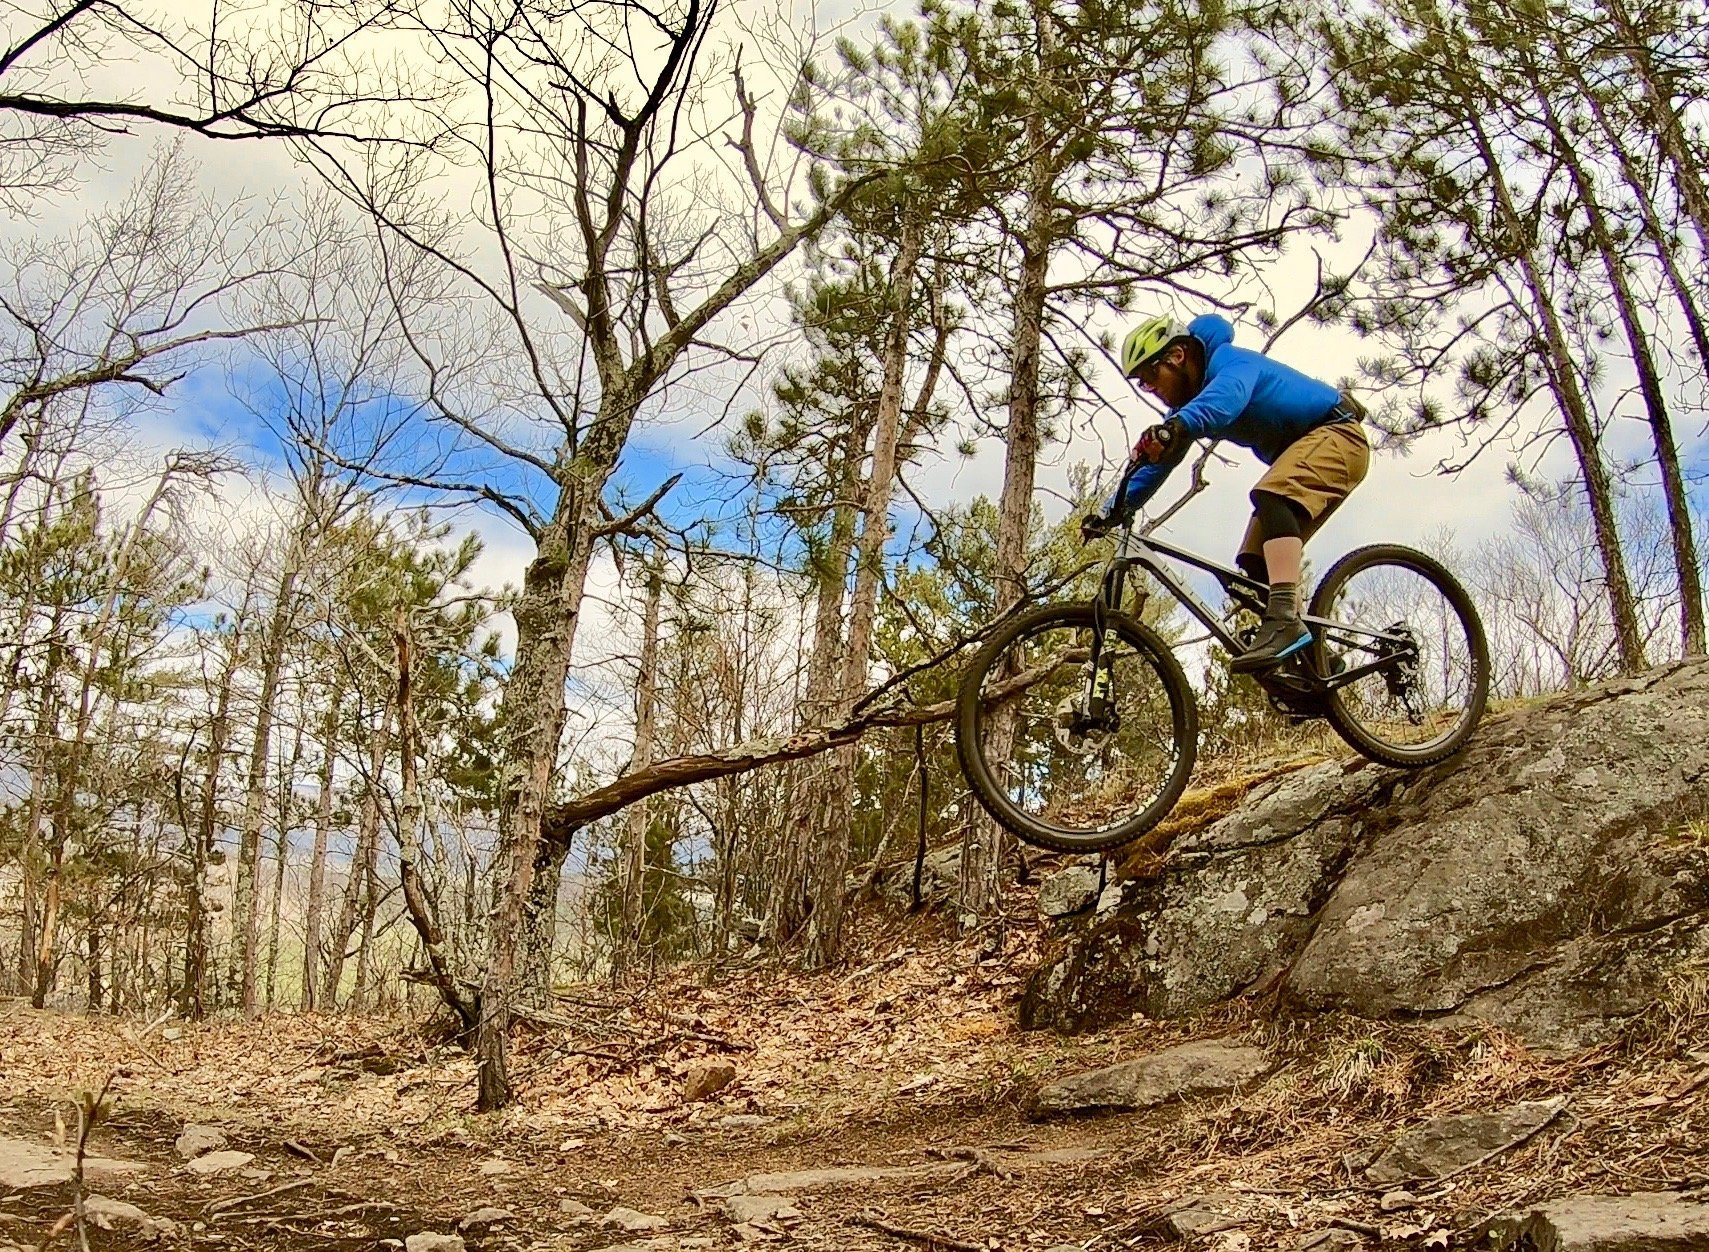 A mountain biker jumping off a rock surrounded by sparse trees